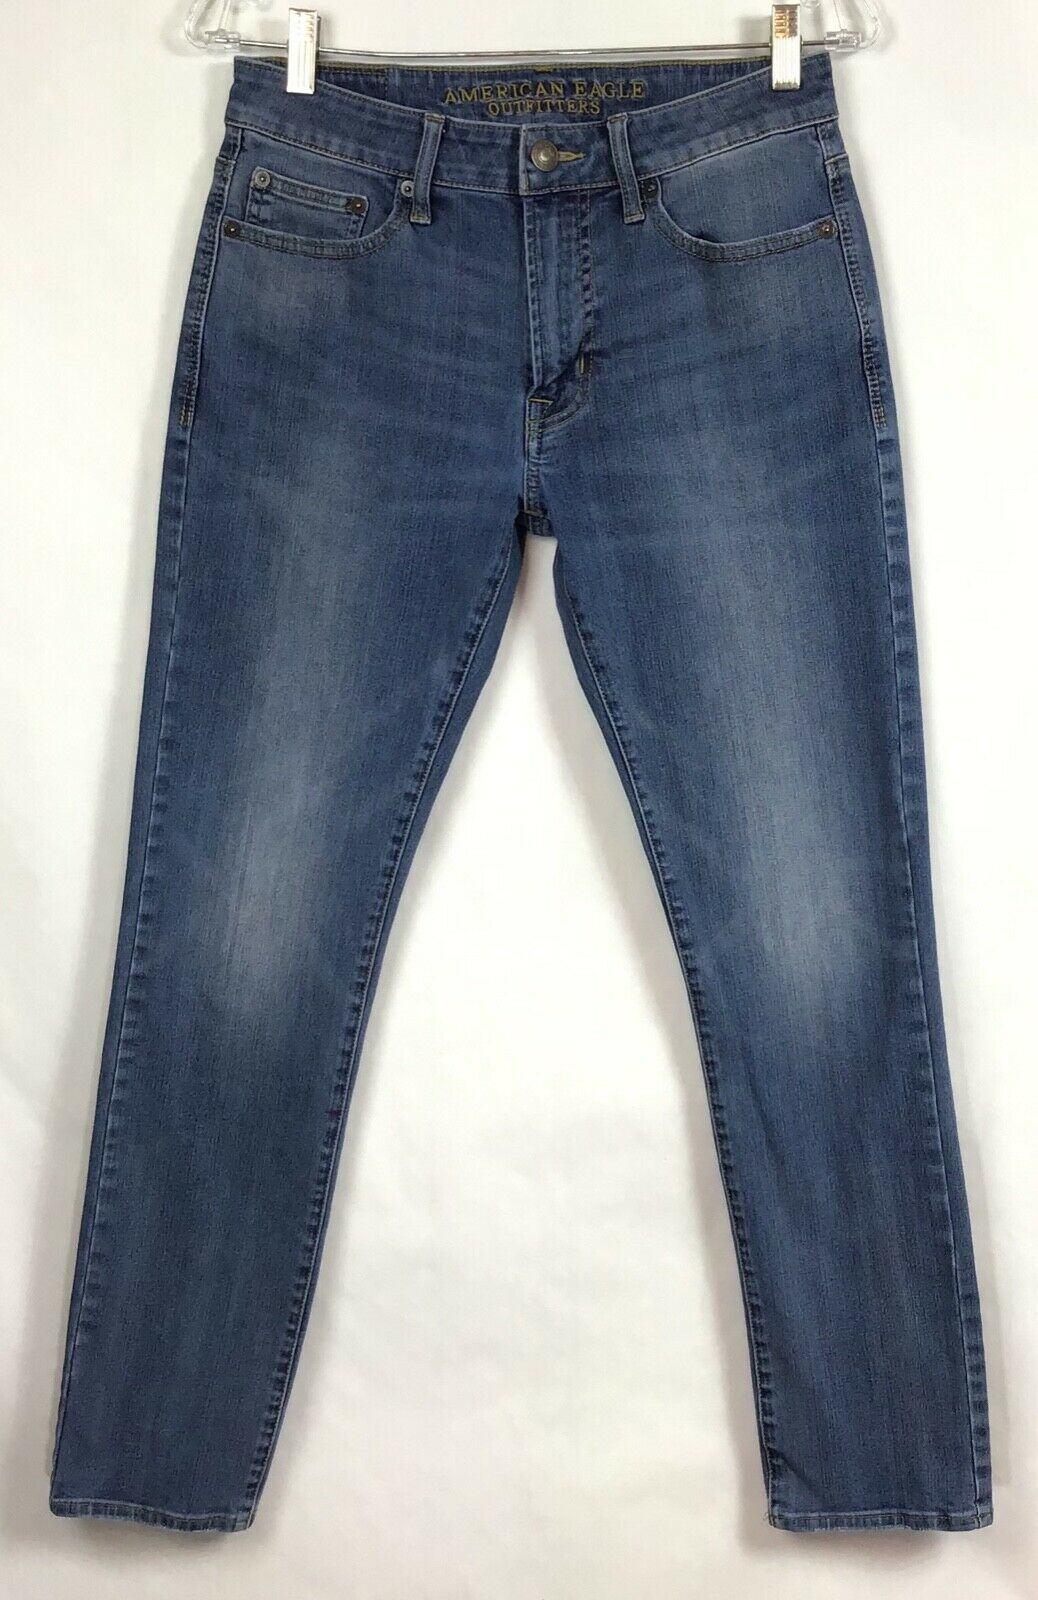 American Eagle Outfittters AEO Mens Denim Jeans 29x30 360 Extreme Flex Stretch